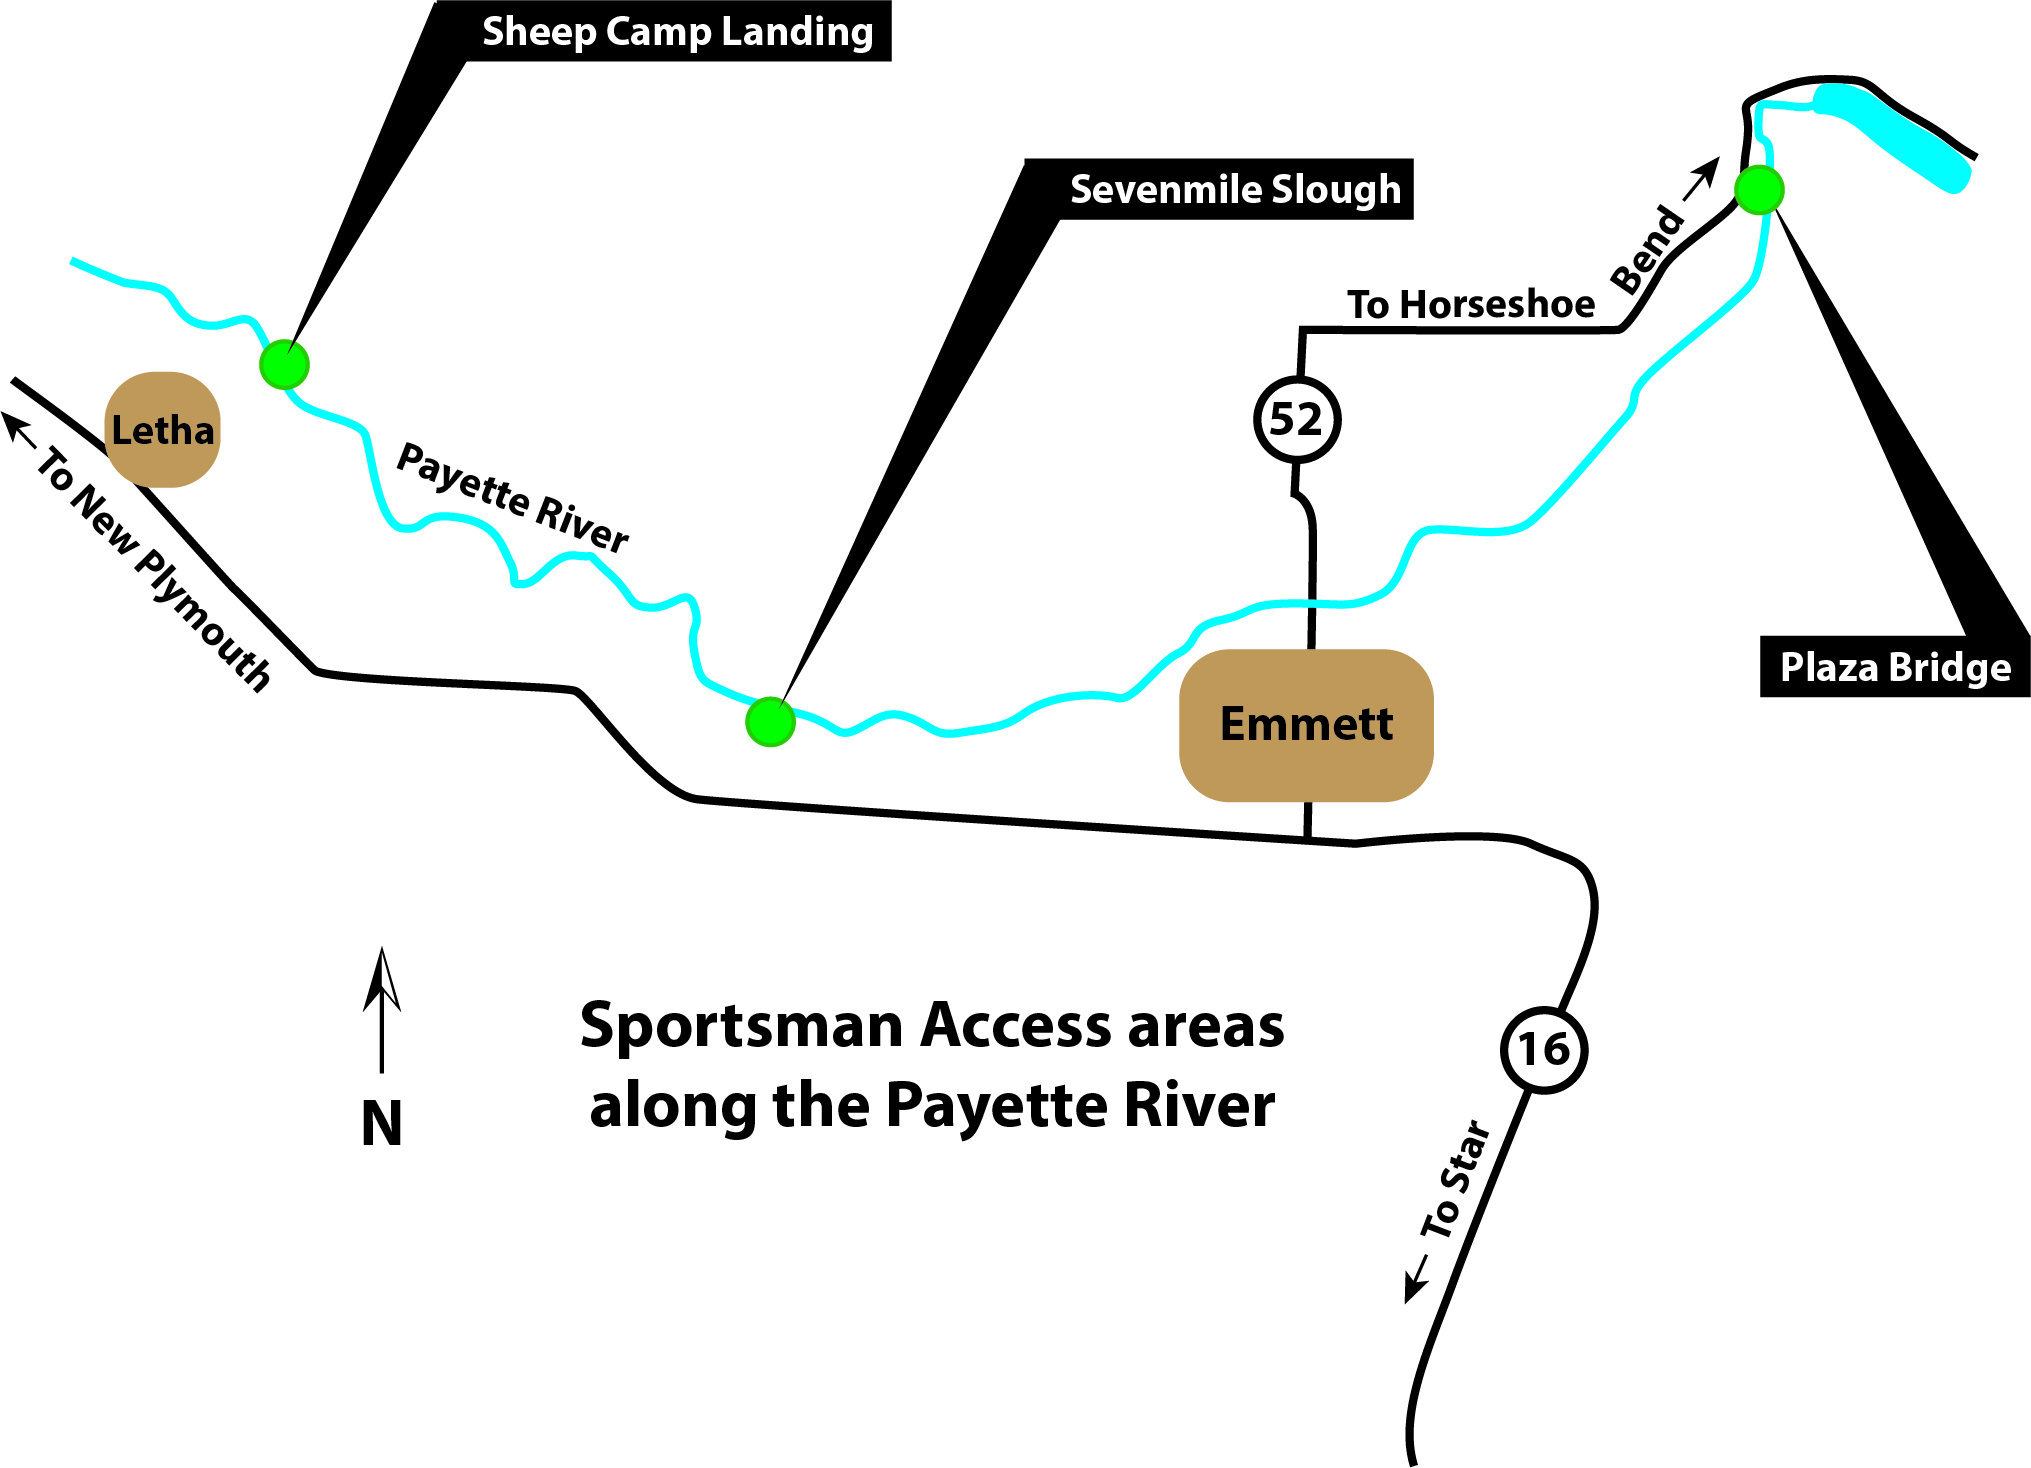 payette_river_access_map